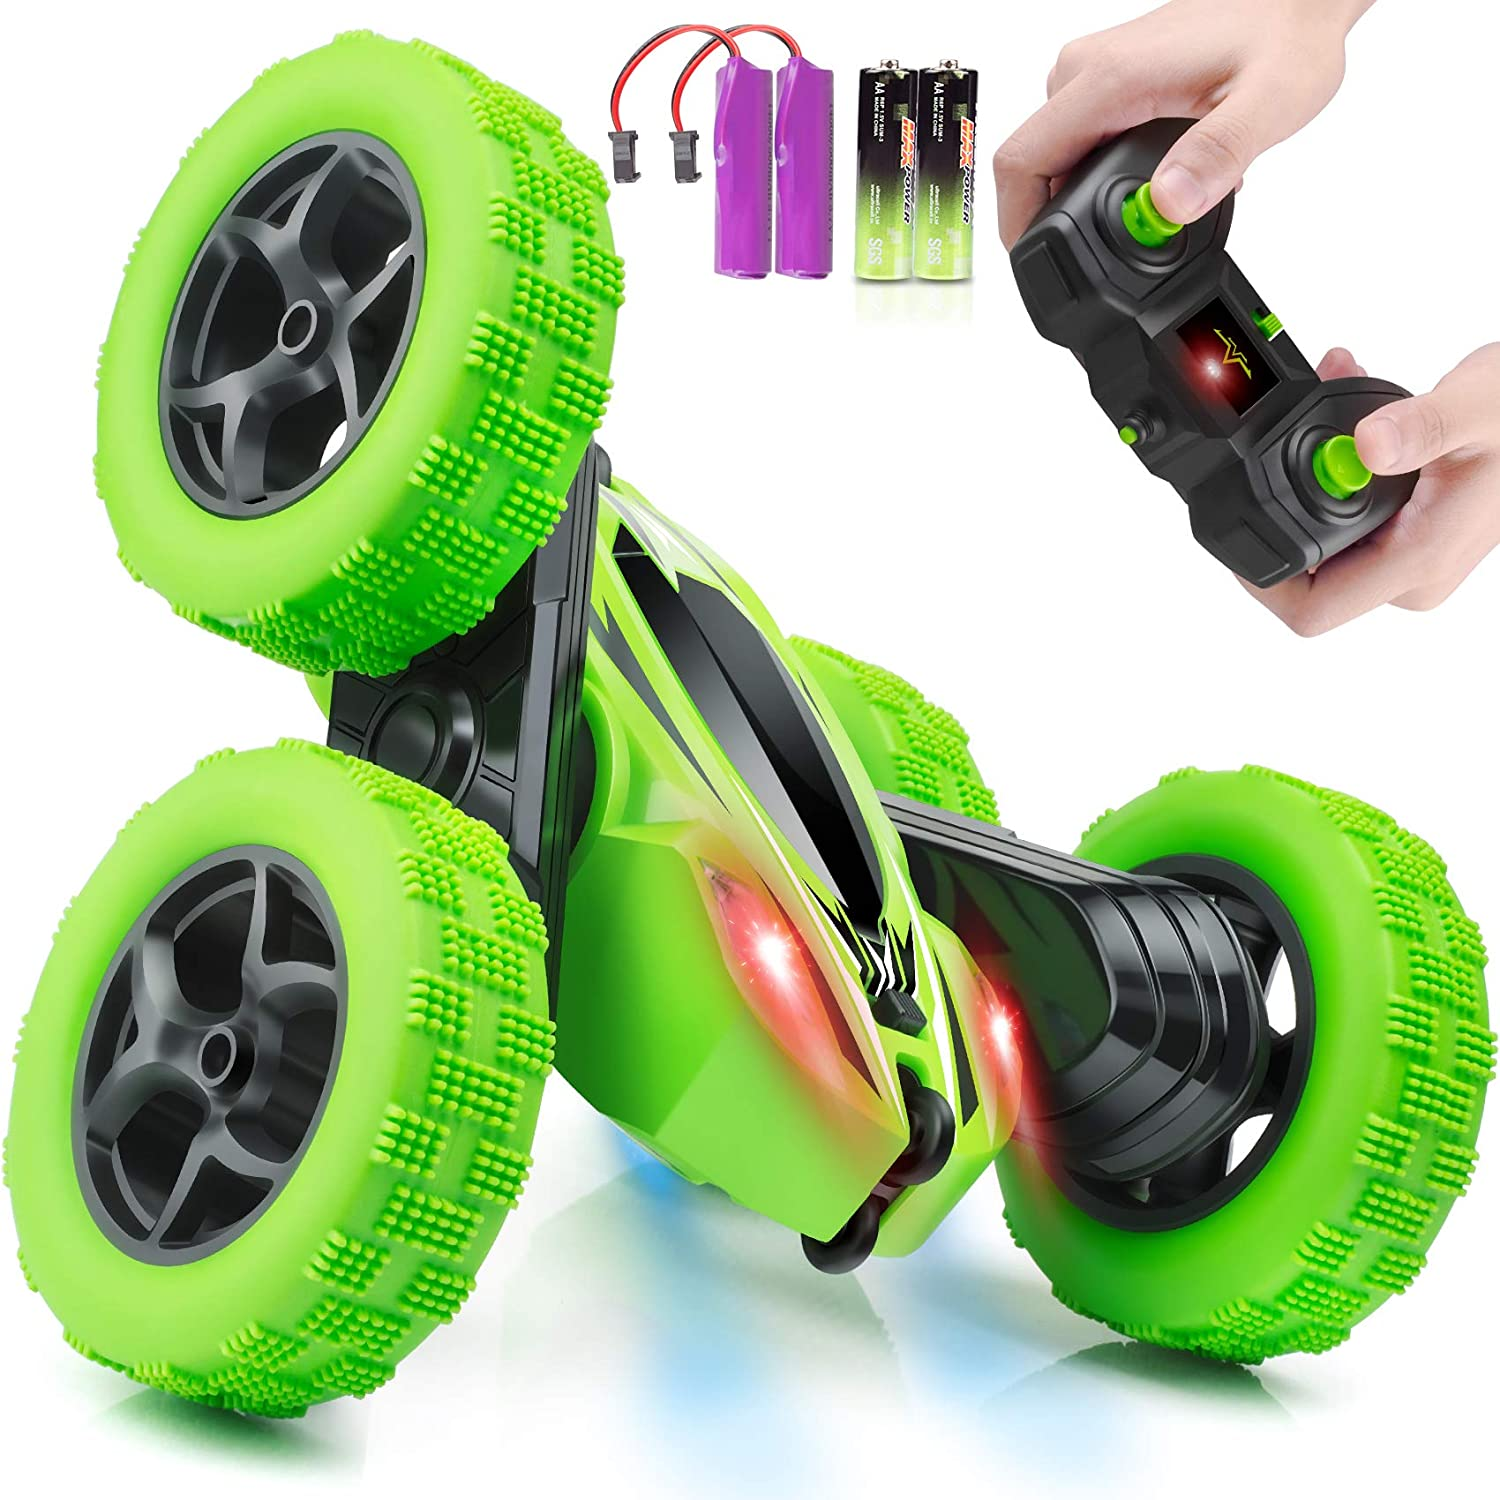 Remote Control Car, ORRENTE RC Cars Stunt Car Toy, 4WD 2.4Ghz Double Sided 360° Rotating RC Car with Headlights, Kids Xmas Toy Cars for Boys/Girls: Toys & Games